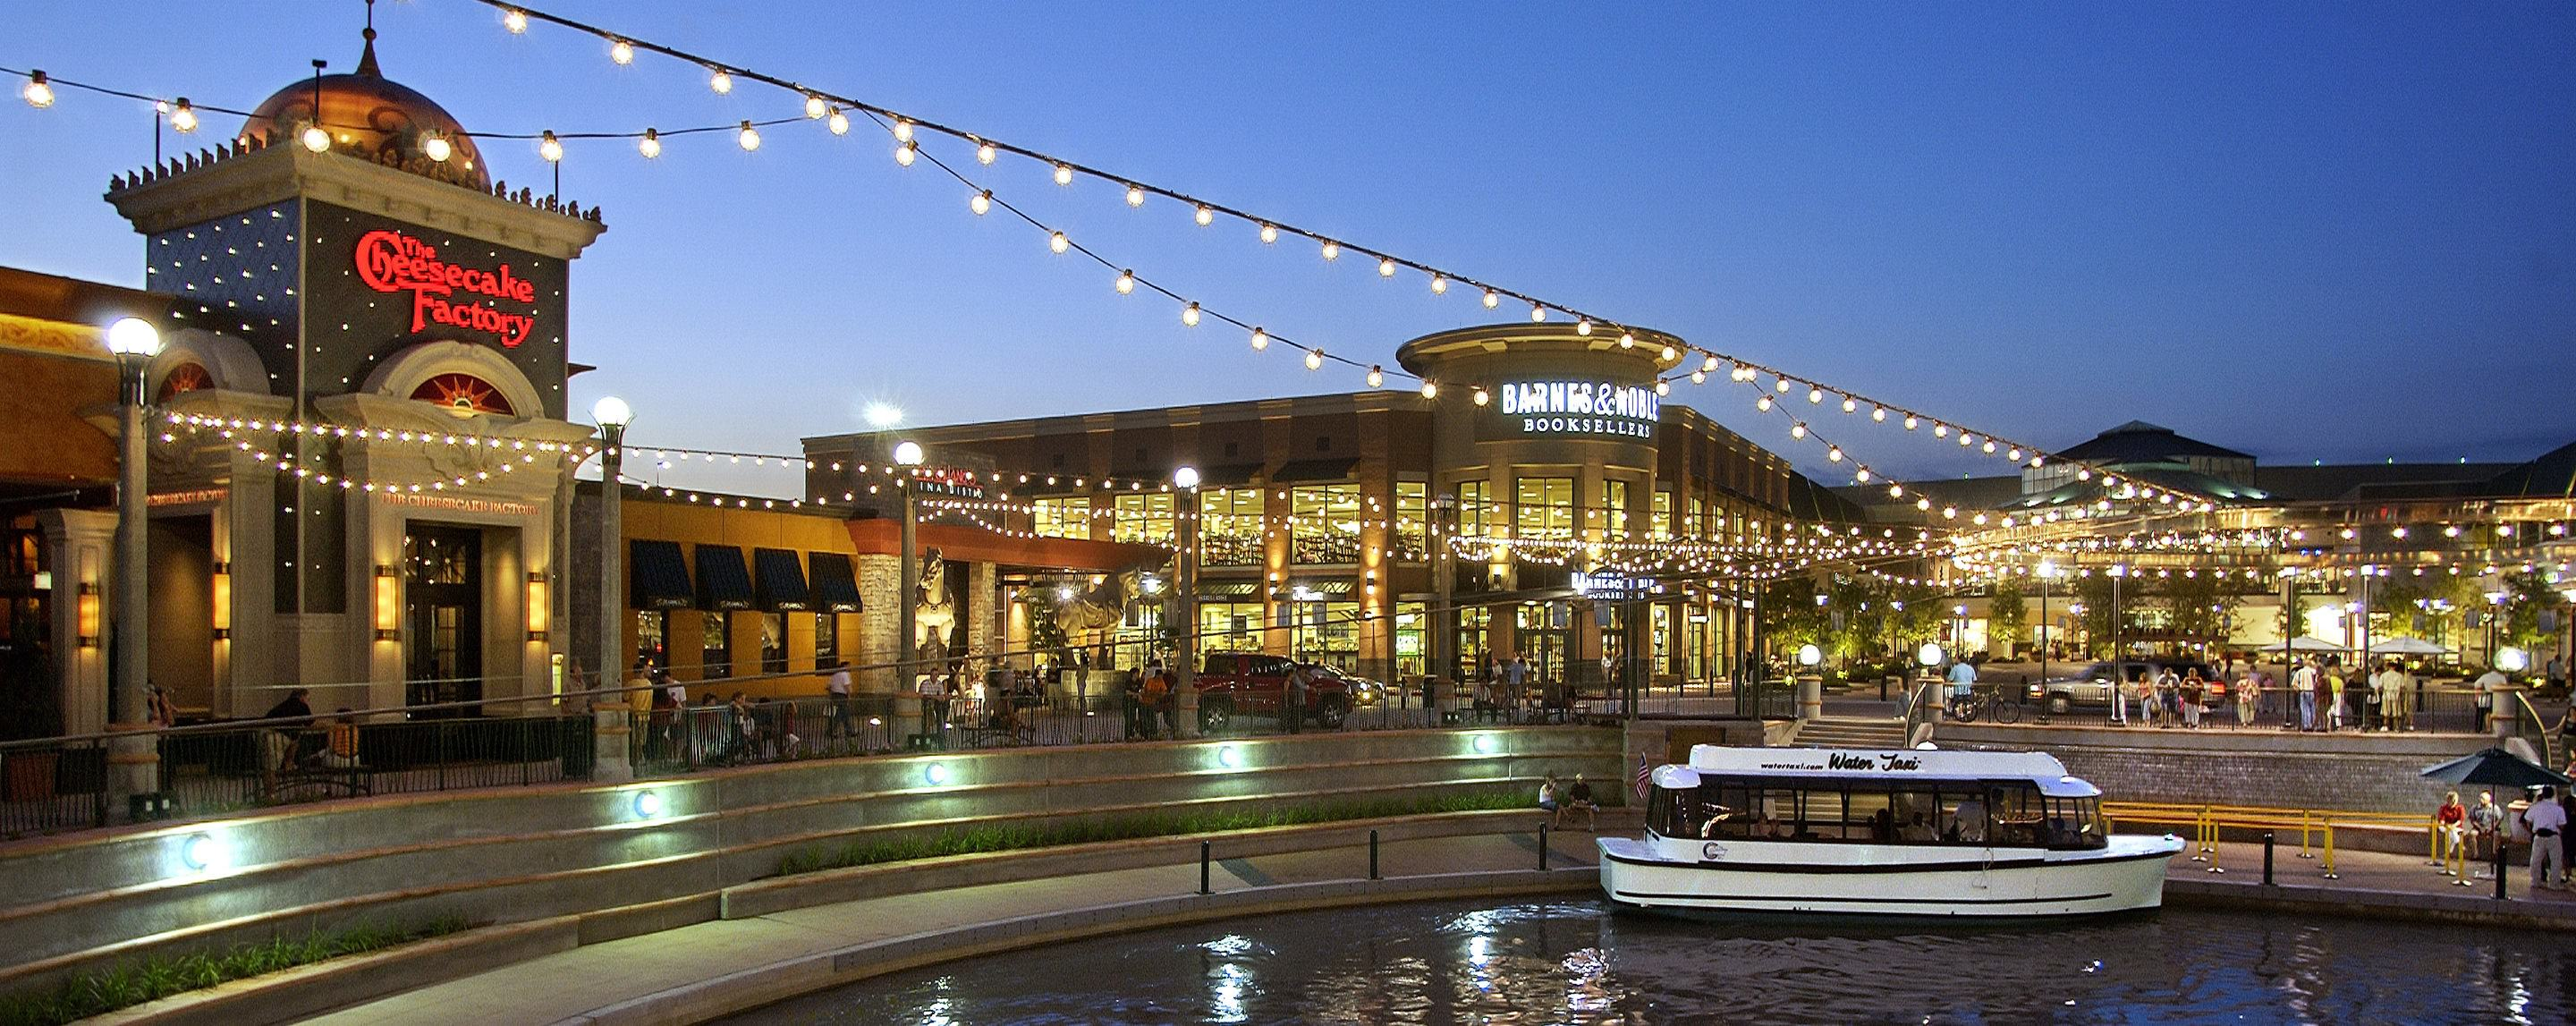 A small boat is docked in the water in front of a large mall featuring a Cheesecake Factory, a Barne